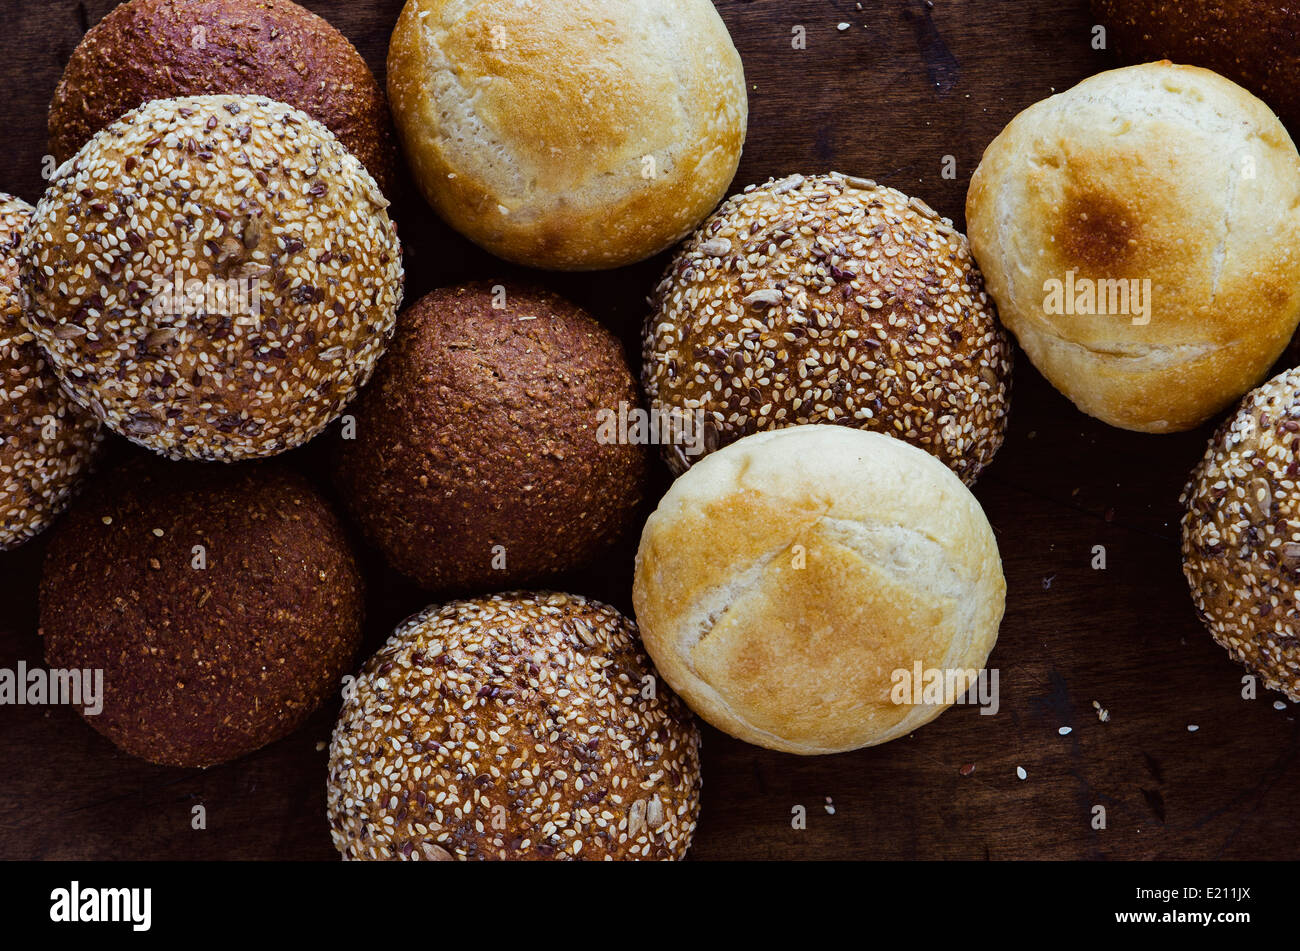 Assorted Artisan Bread Rolls - Stock Image